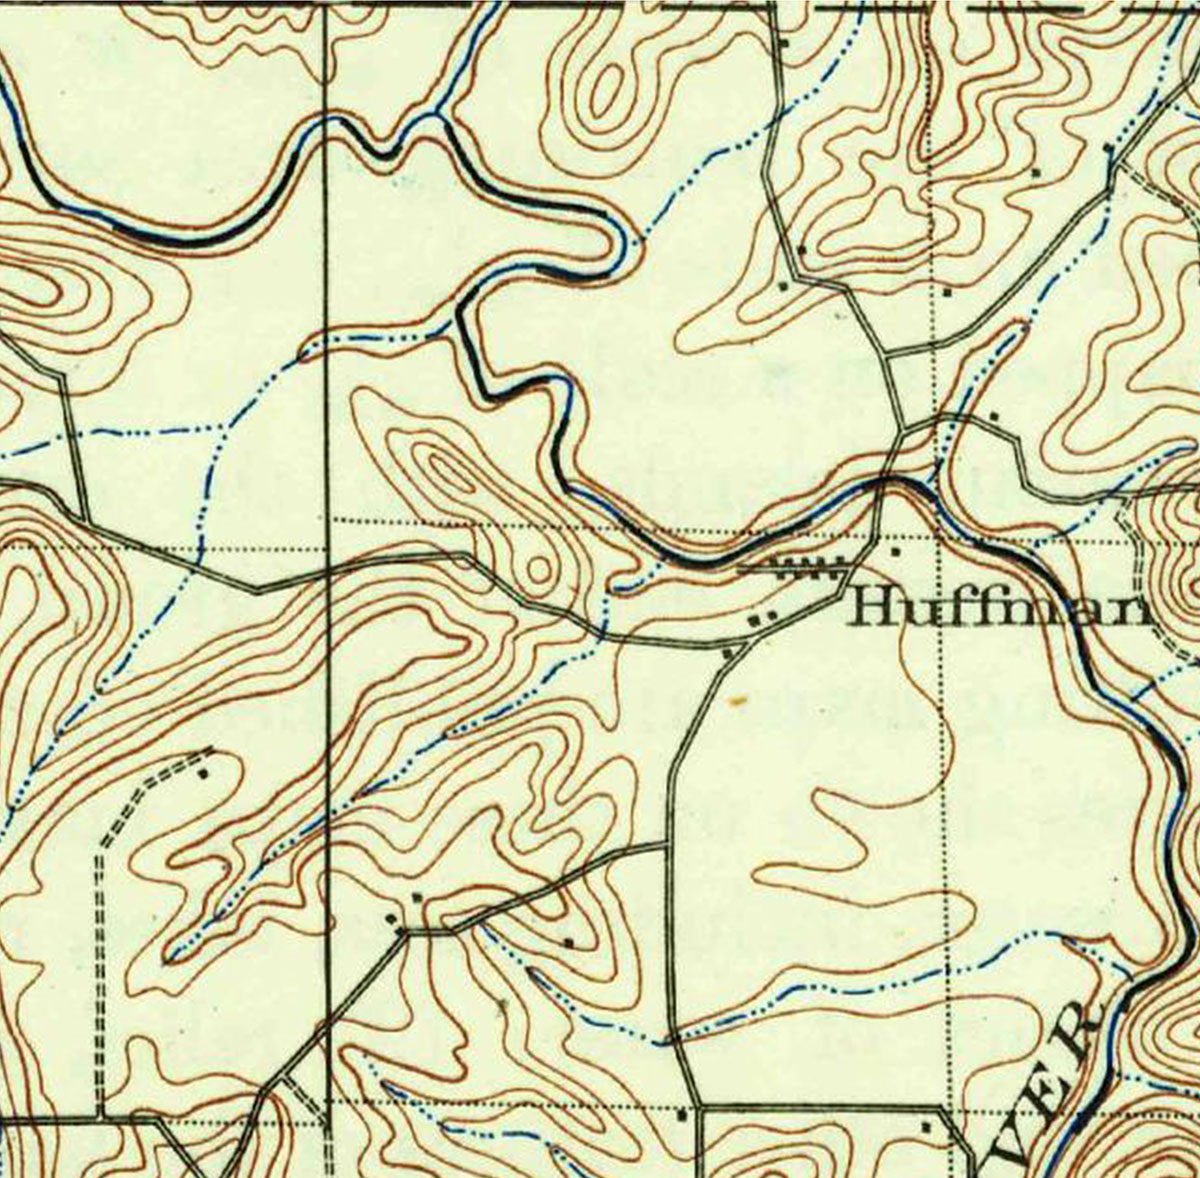 the first image is copied from the 1910 usgs map while the bottom usgs map shows the current location of roads buildings etc